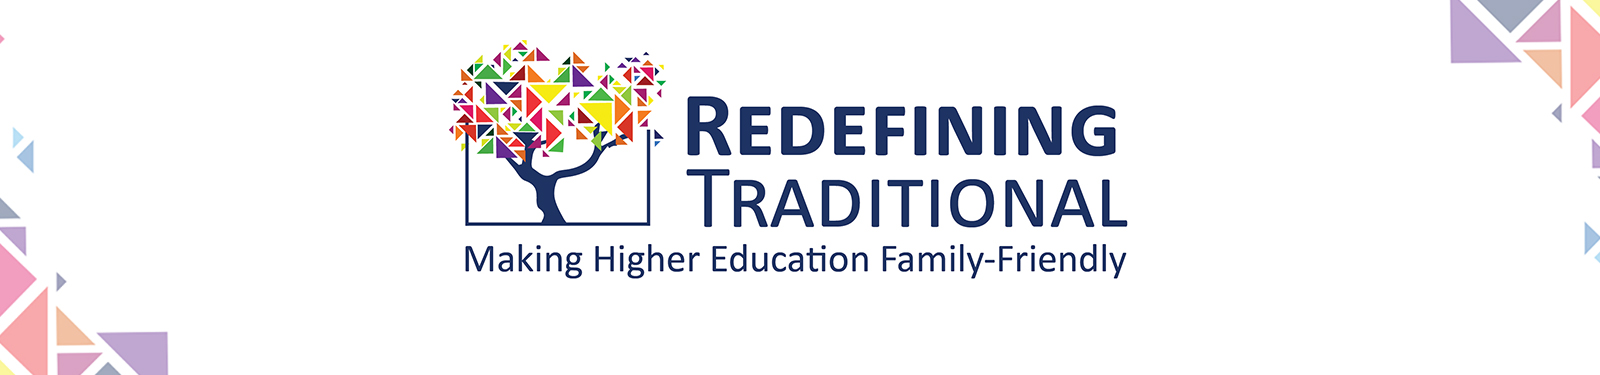 Redefining Traditional